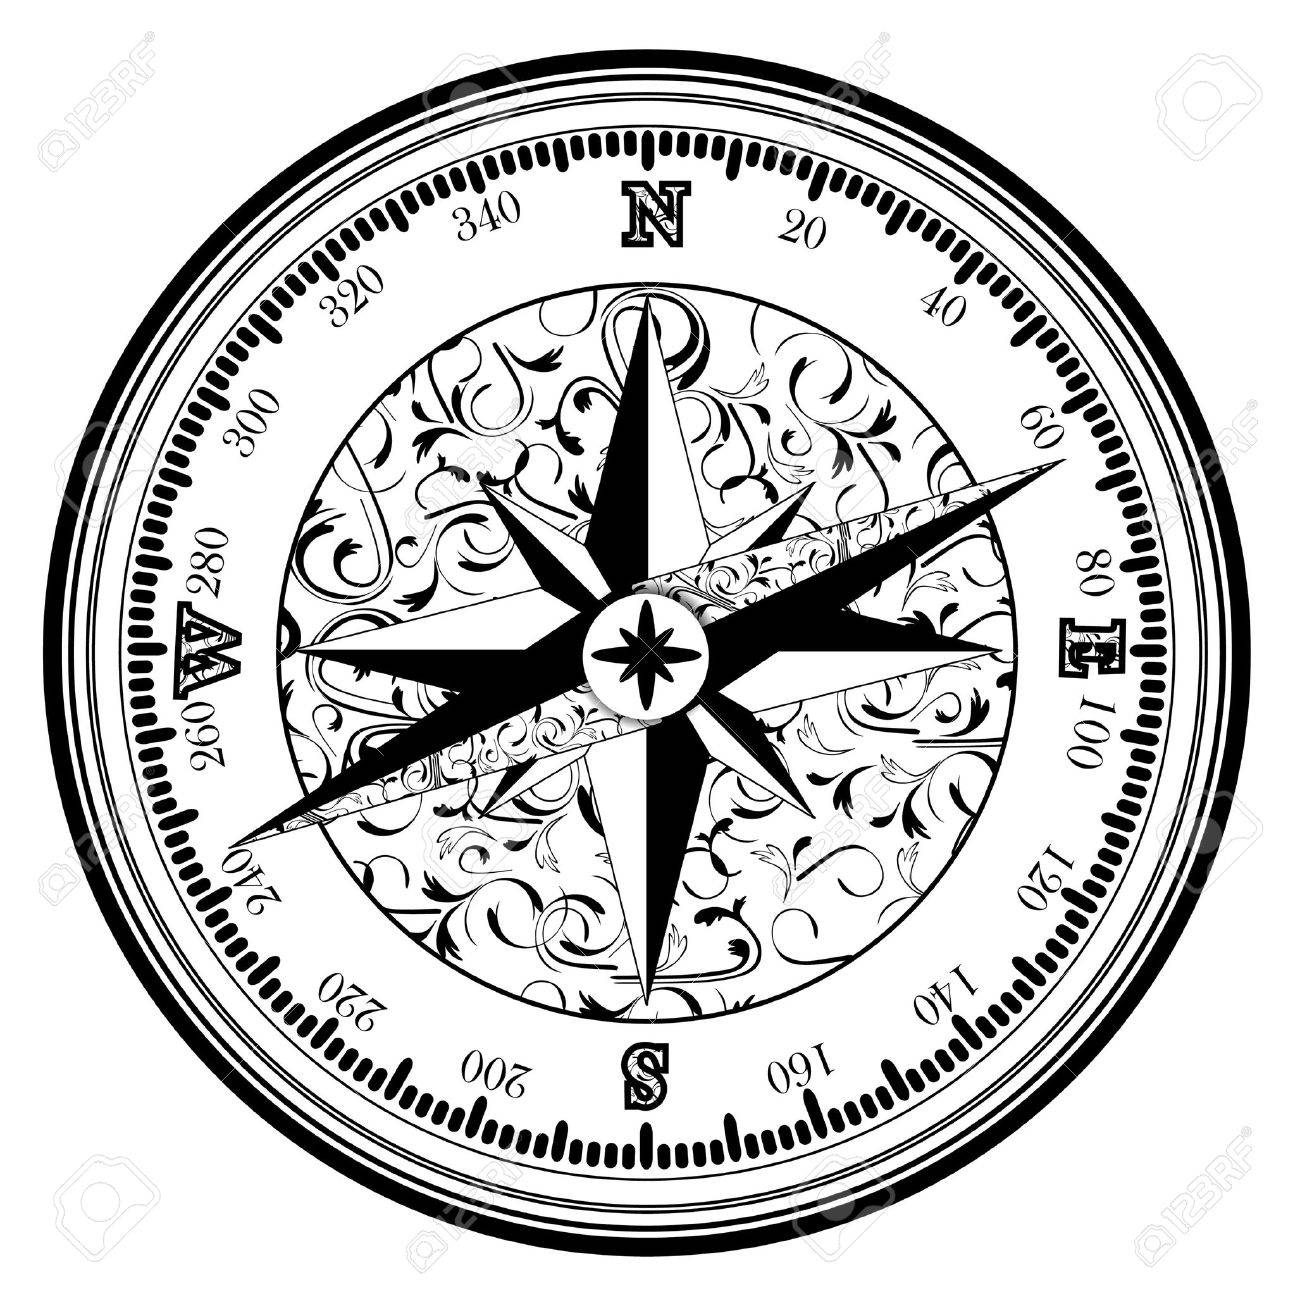 Vintage antique compass in black and white - 14008423